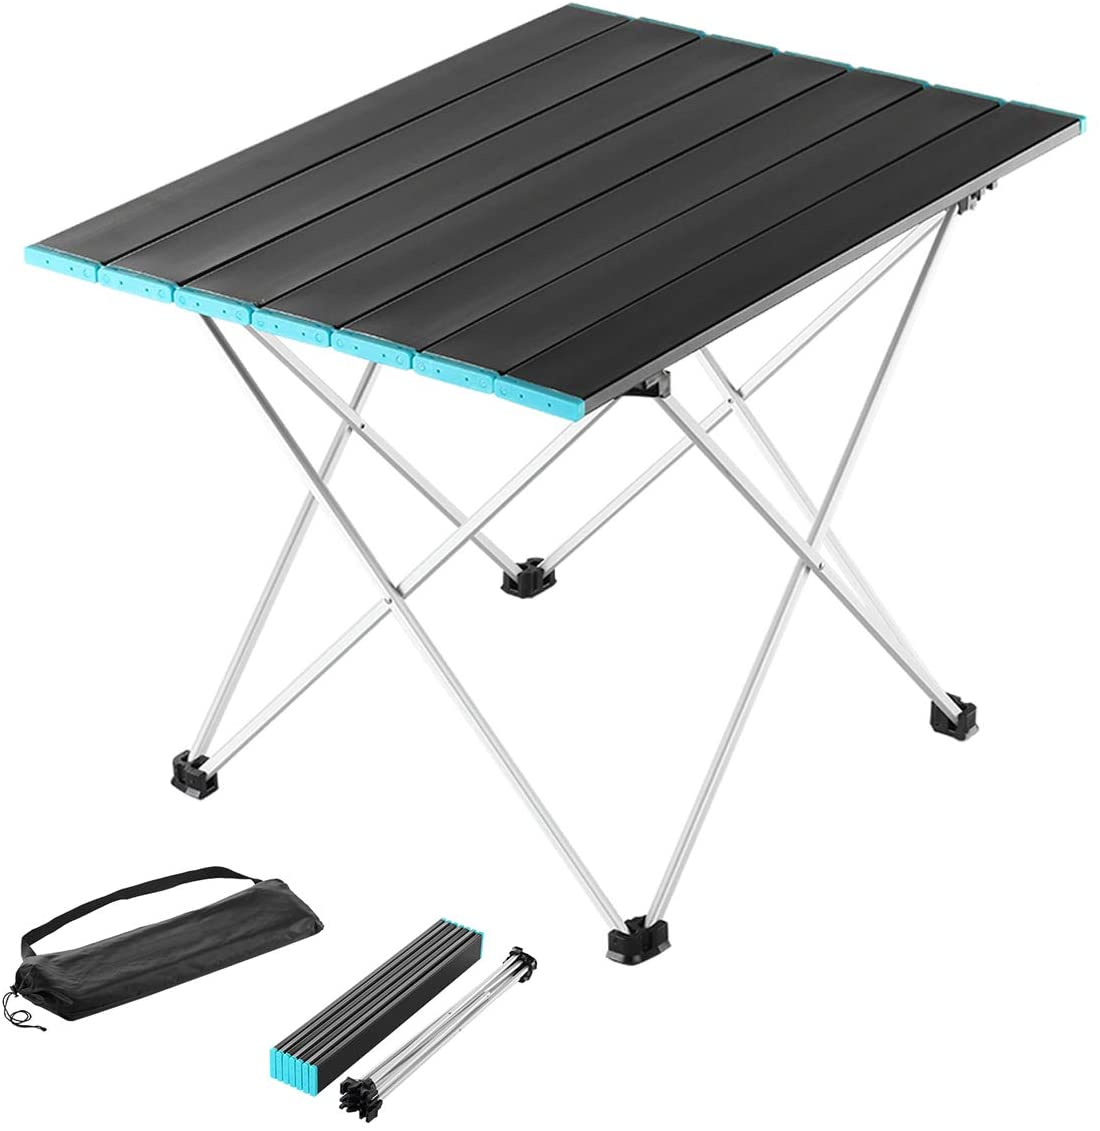 WIZDAYS Folding Camping Table